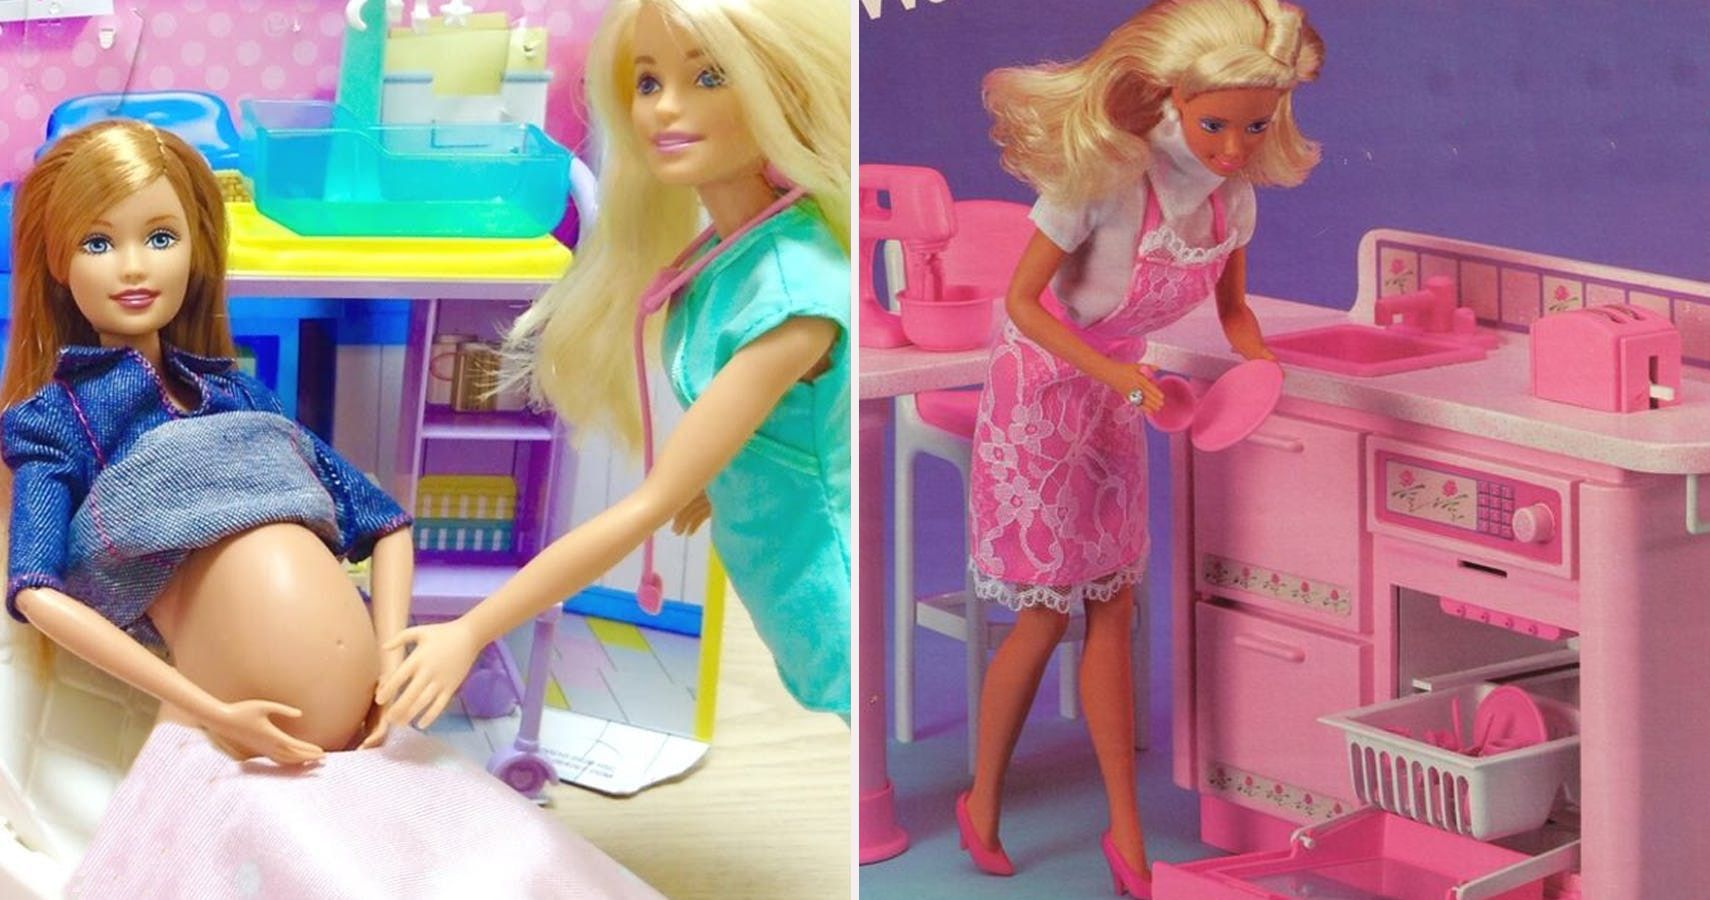 barbie controversy summary The controversy behind barbie at the age of 41, barbie is one of the longest living toys in america while she may not be the face of america, she has a well-known american face that not only created the doll industry but also set the standard.